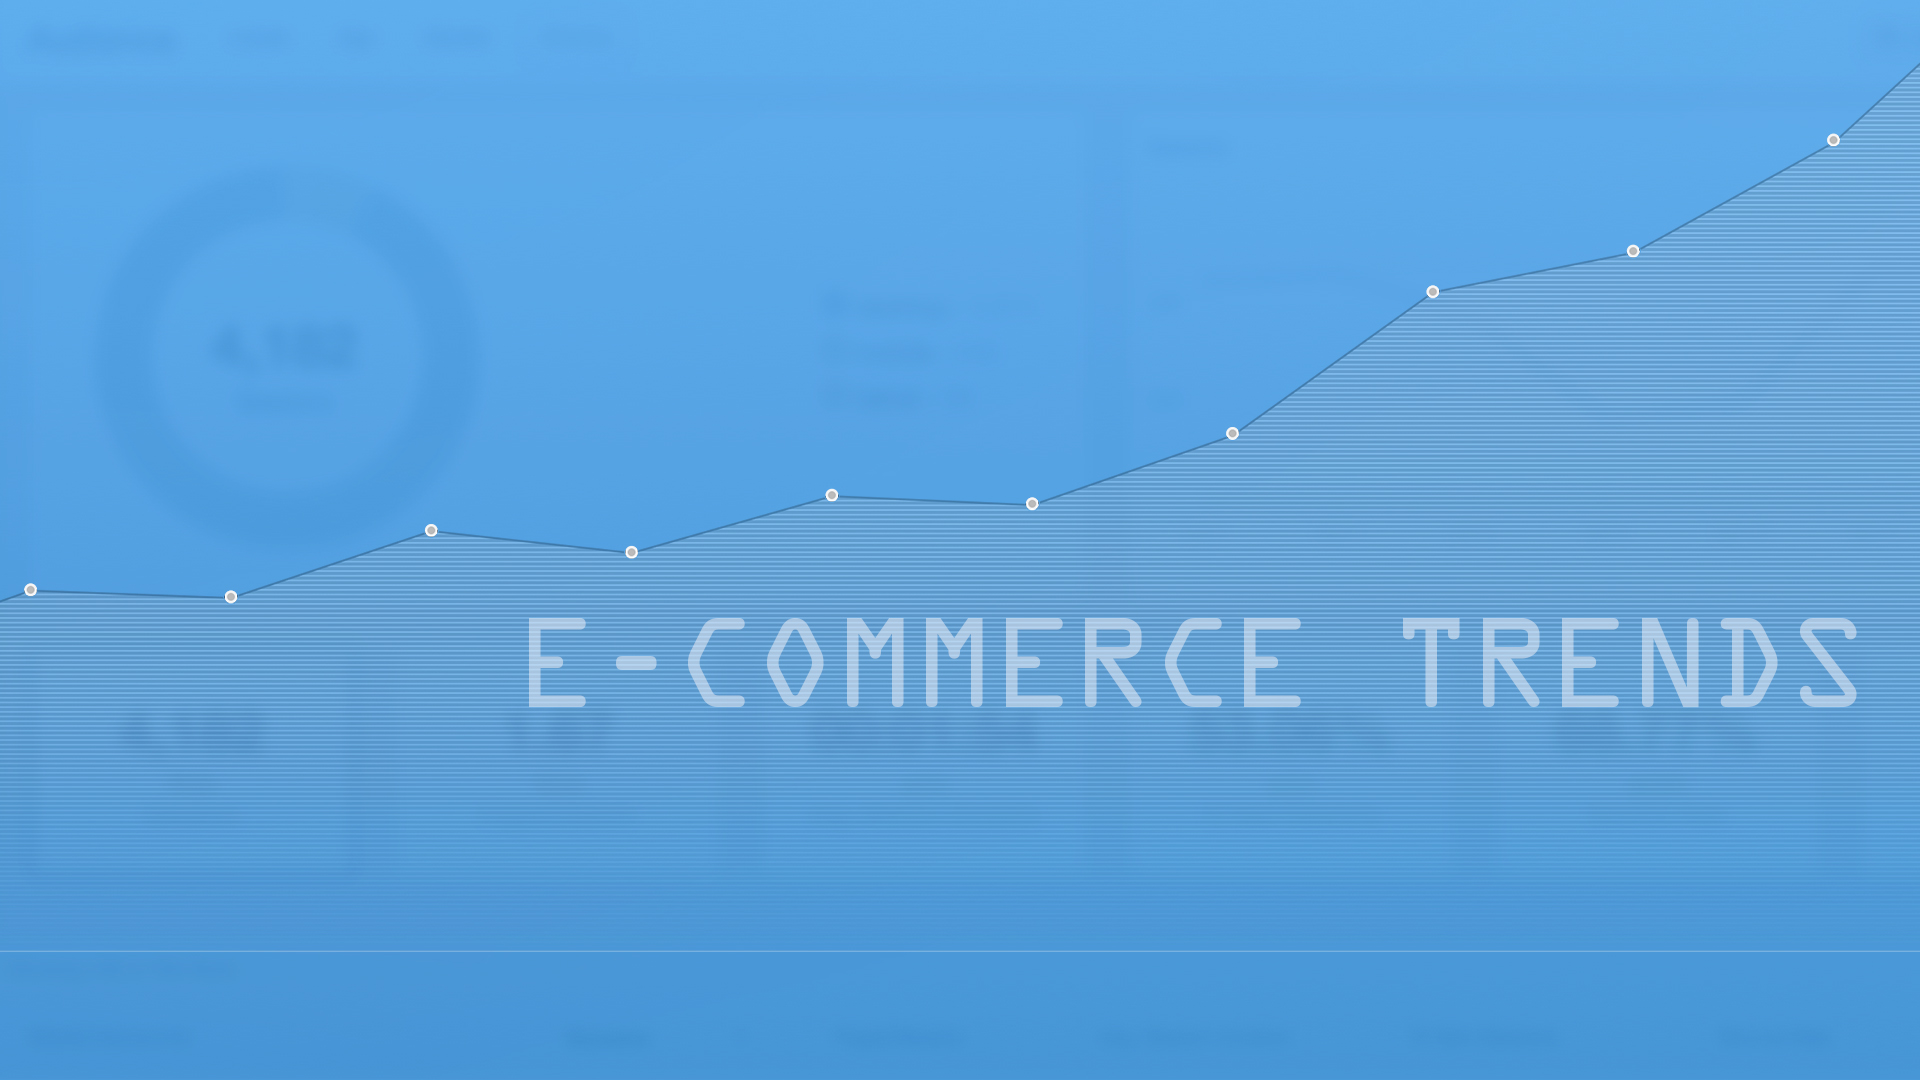 3 E-commerce trends to follow in 2019